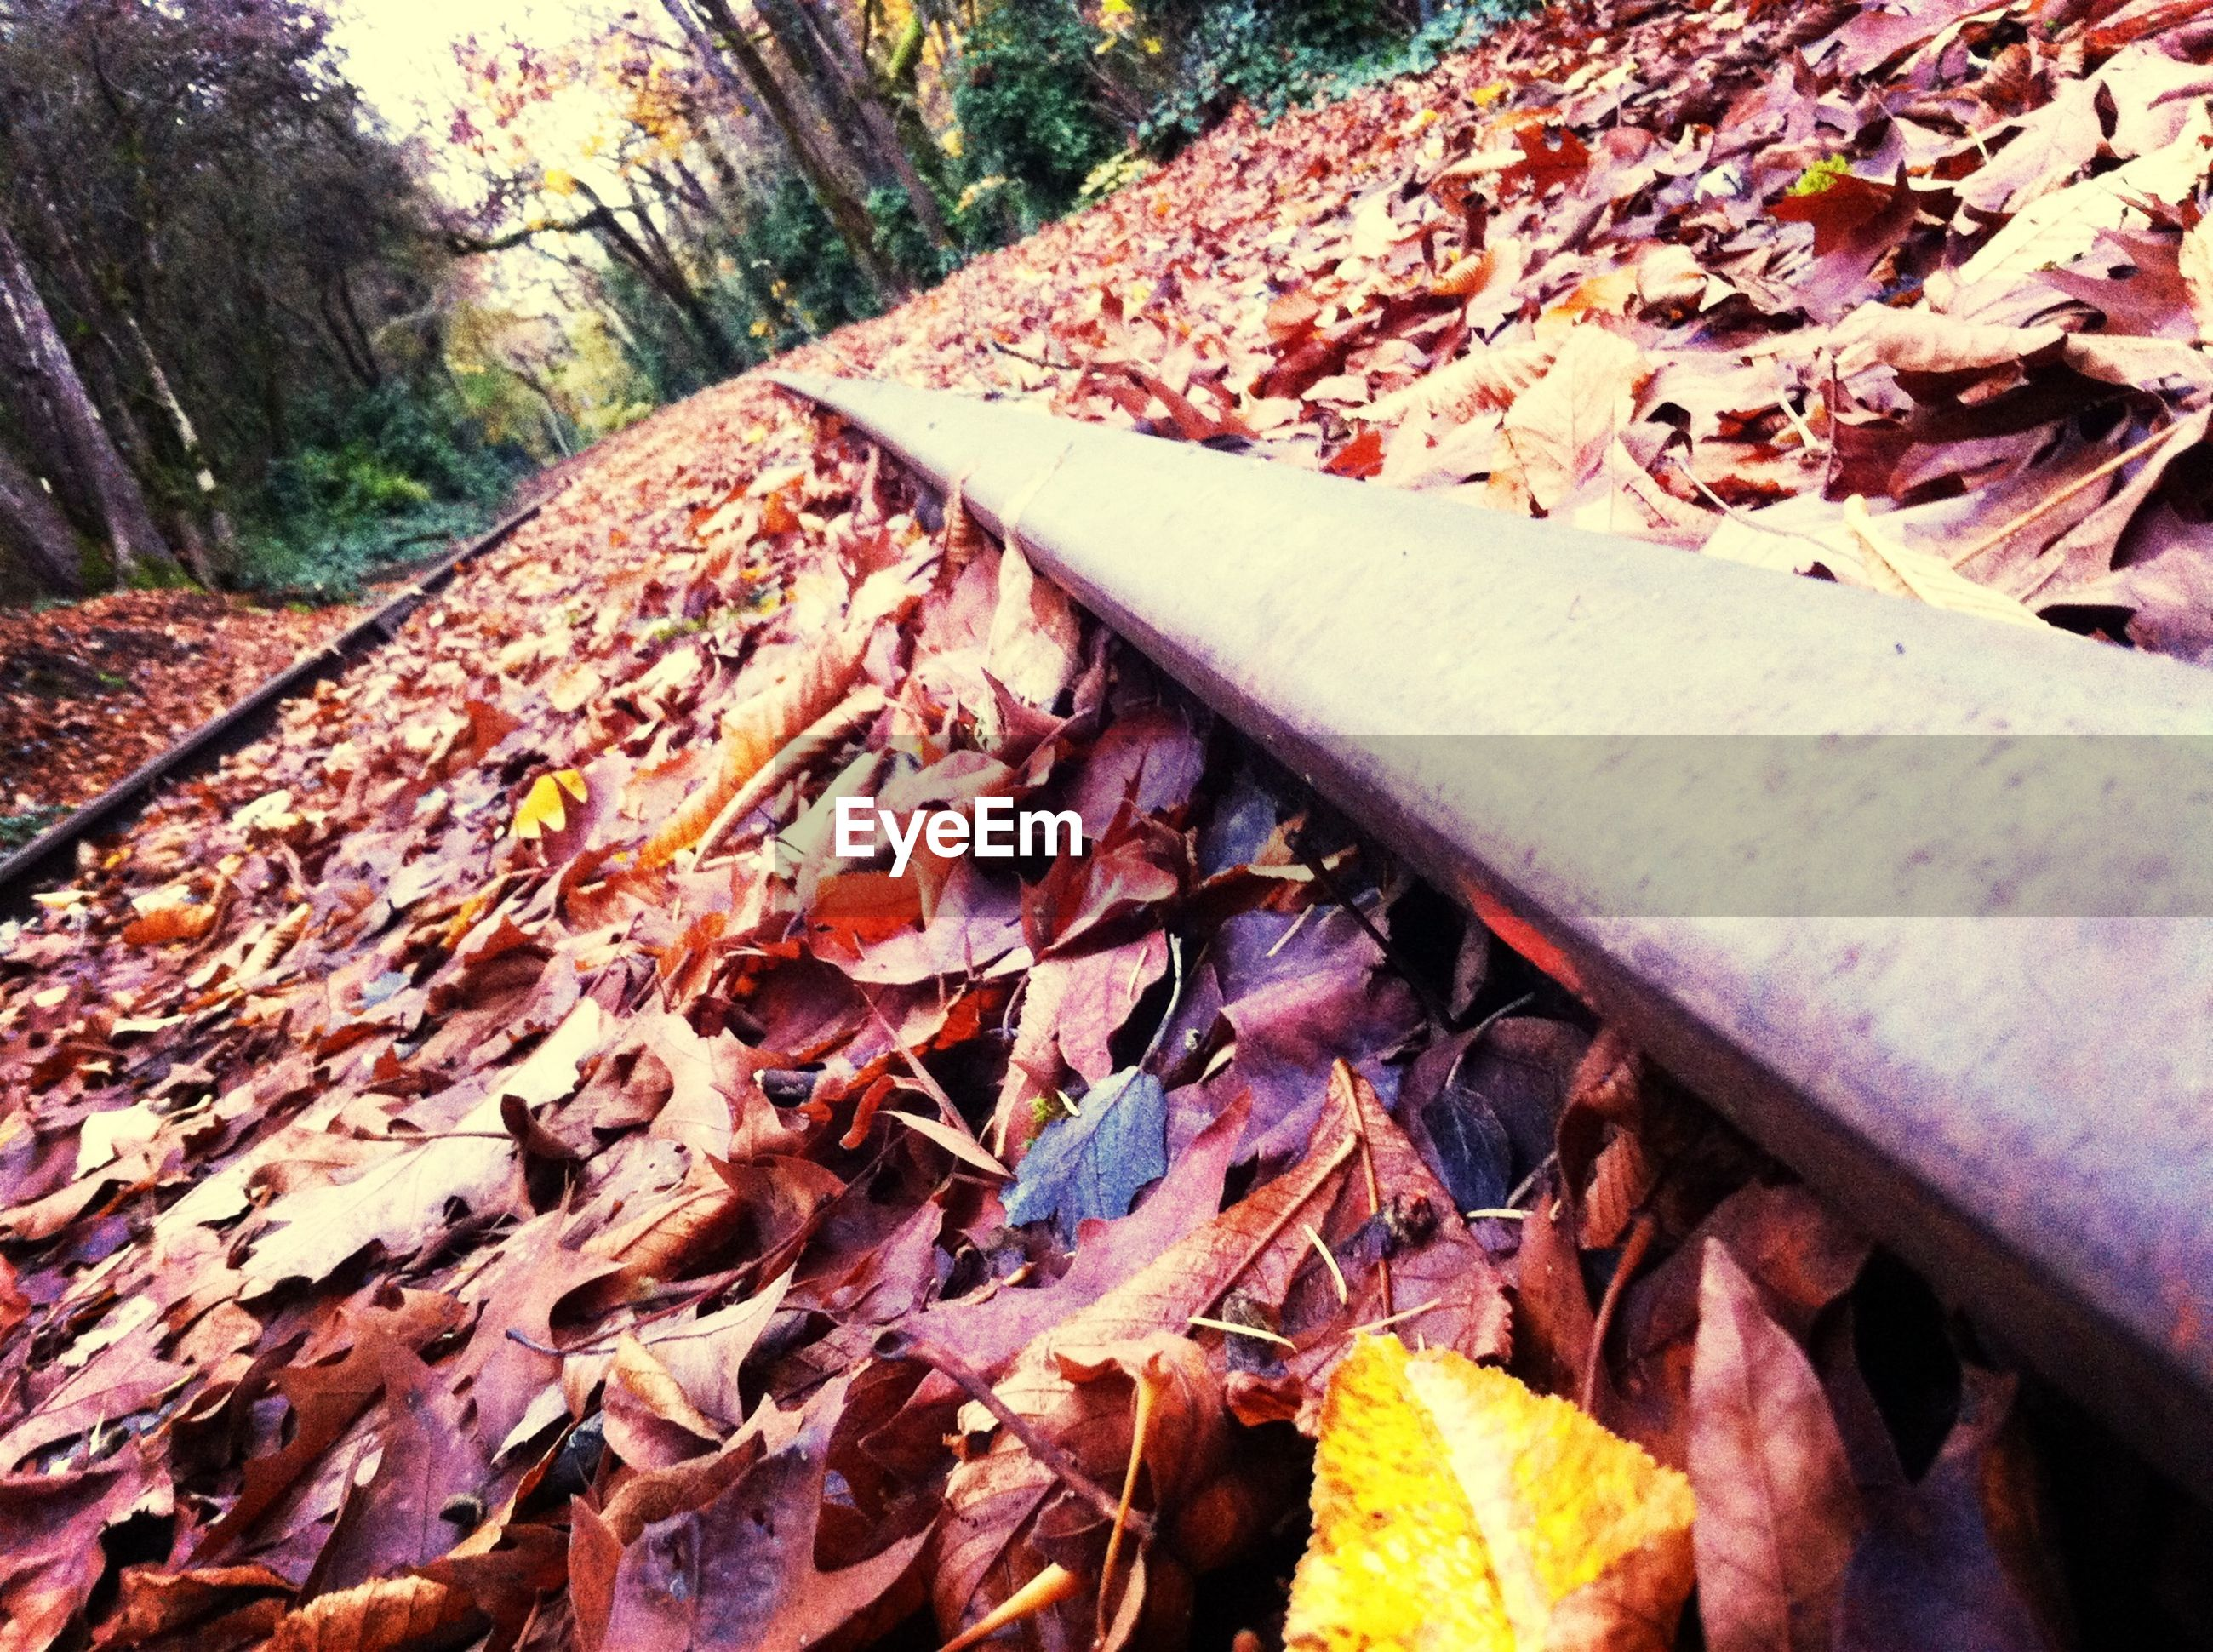 autumn, leaf, change, season, leaves, dry, fallen, nature, day, tree, outdoors, tranquility, close-up, falling, no people, fall, field, high angle view, surface level, wood - material